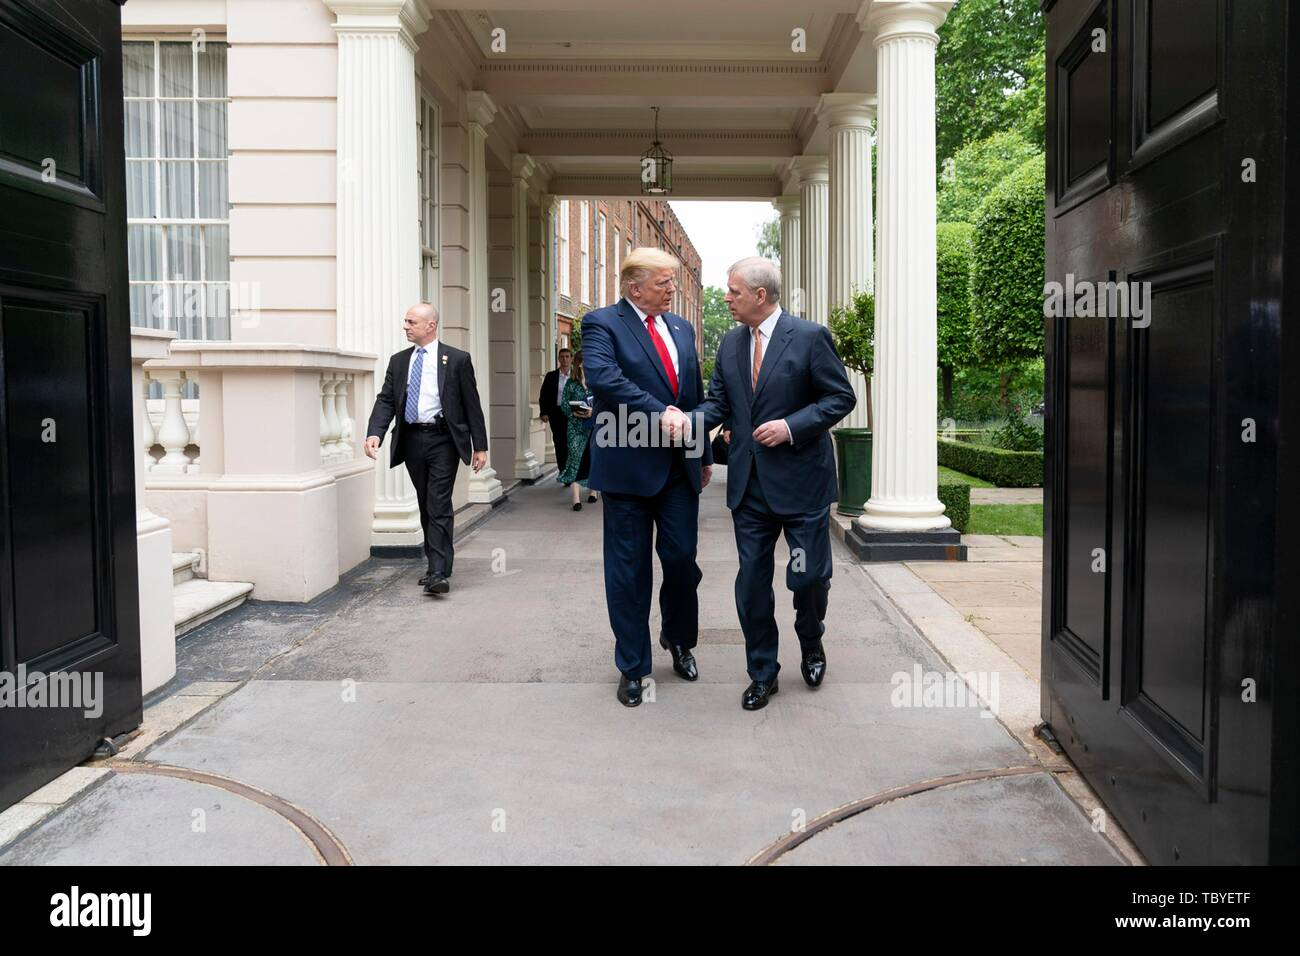 London, UK. 04th June, 2019. U.S President Donald Trump is met by His Royal Highness Prince Andrew outside St. James's Palace on his way to No. 10 Downing Street June 4, 2019 in London, England. Credit: Planetpix/Alamy Live News - Stock Image